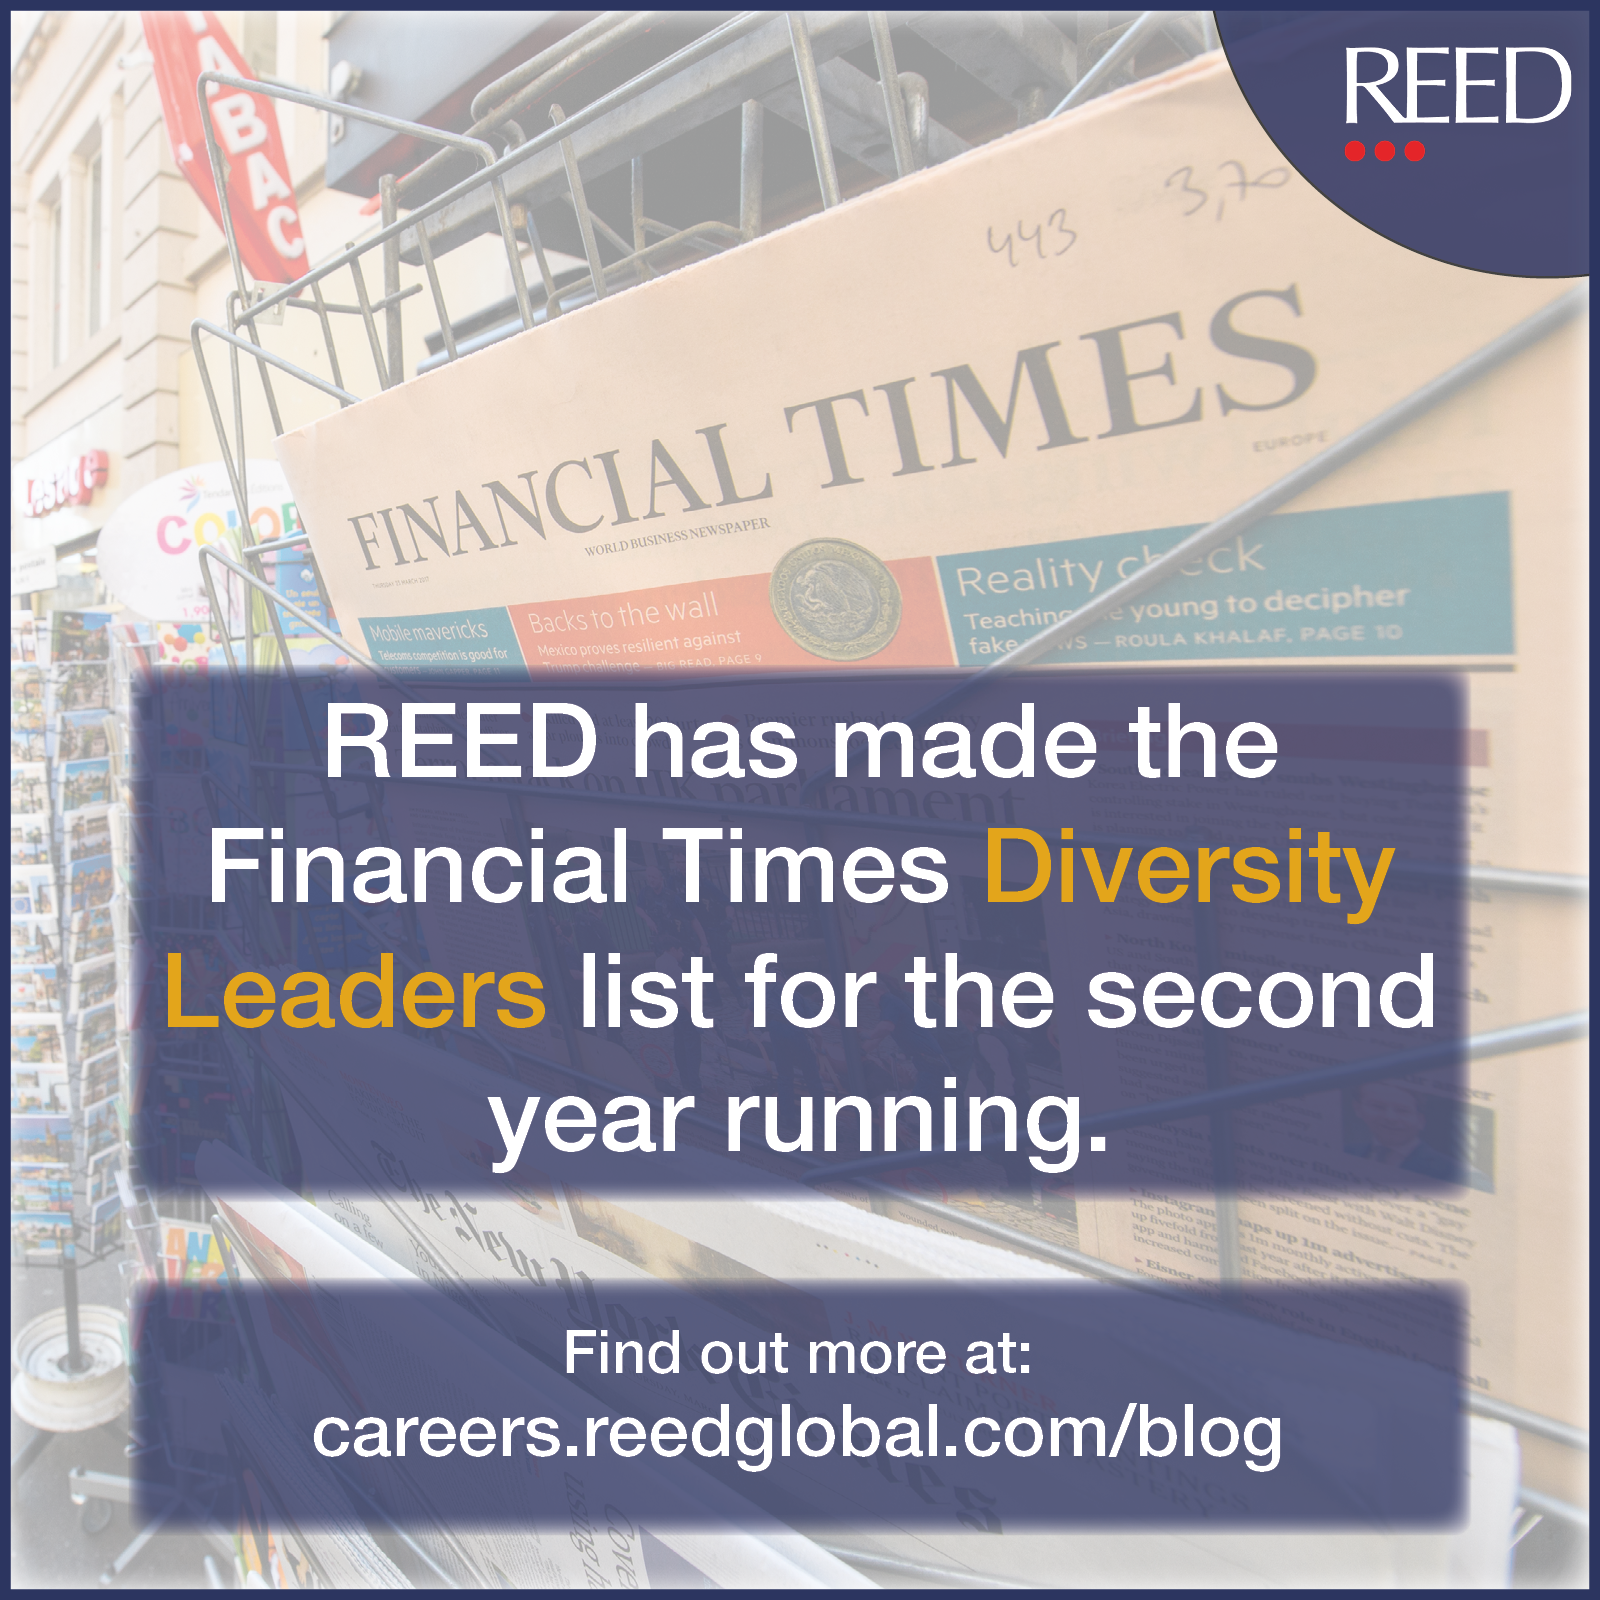 FT Diversity Leader 2020 blog - reed listed in financial times diversity leaders list 2020